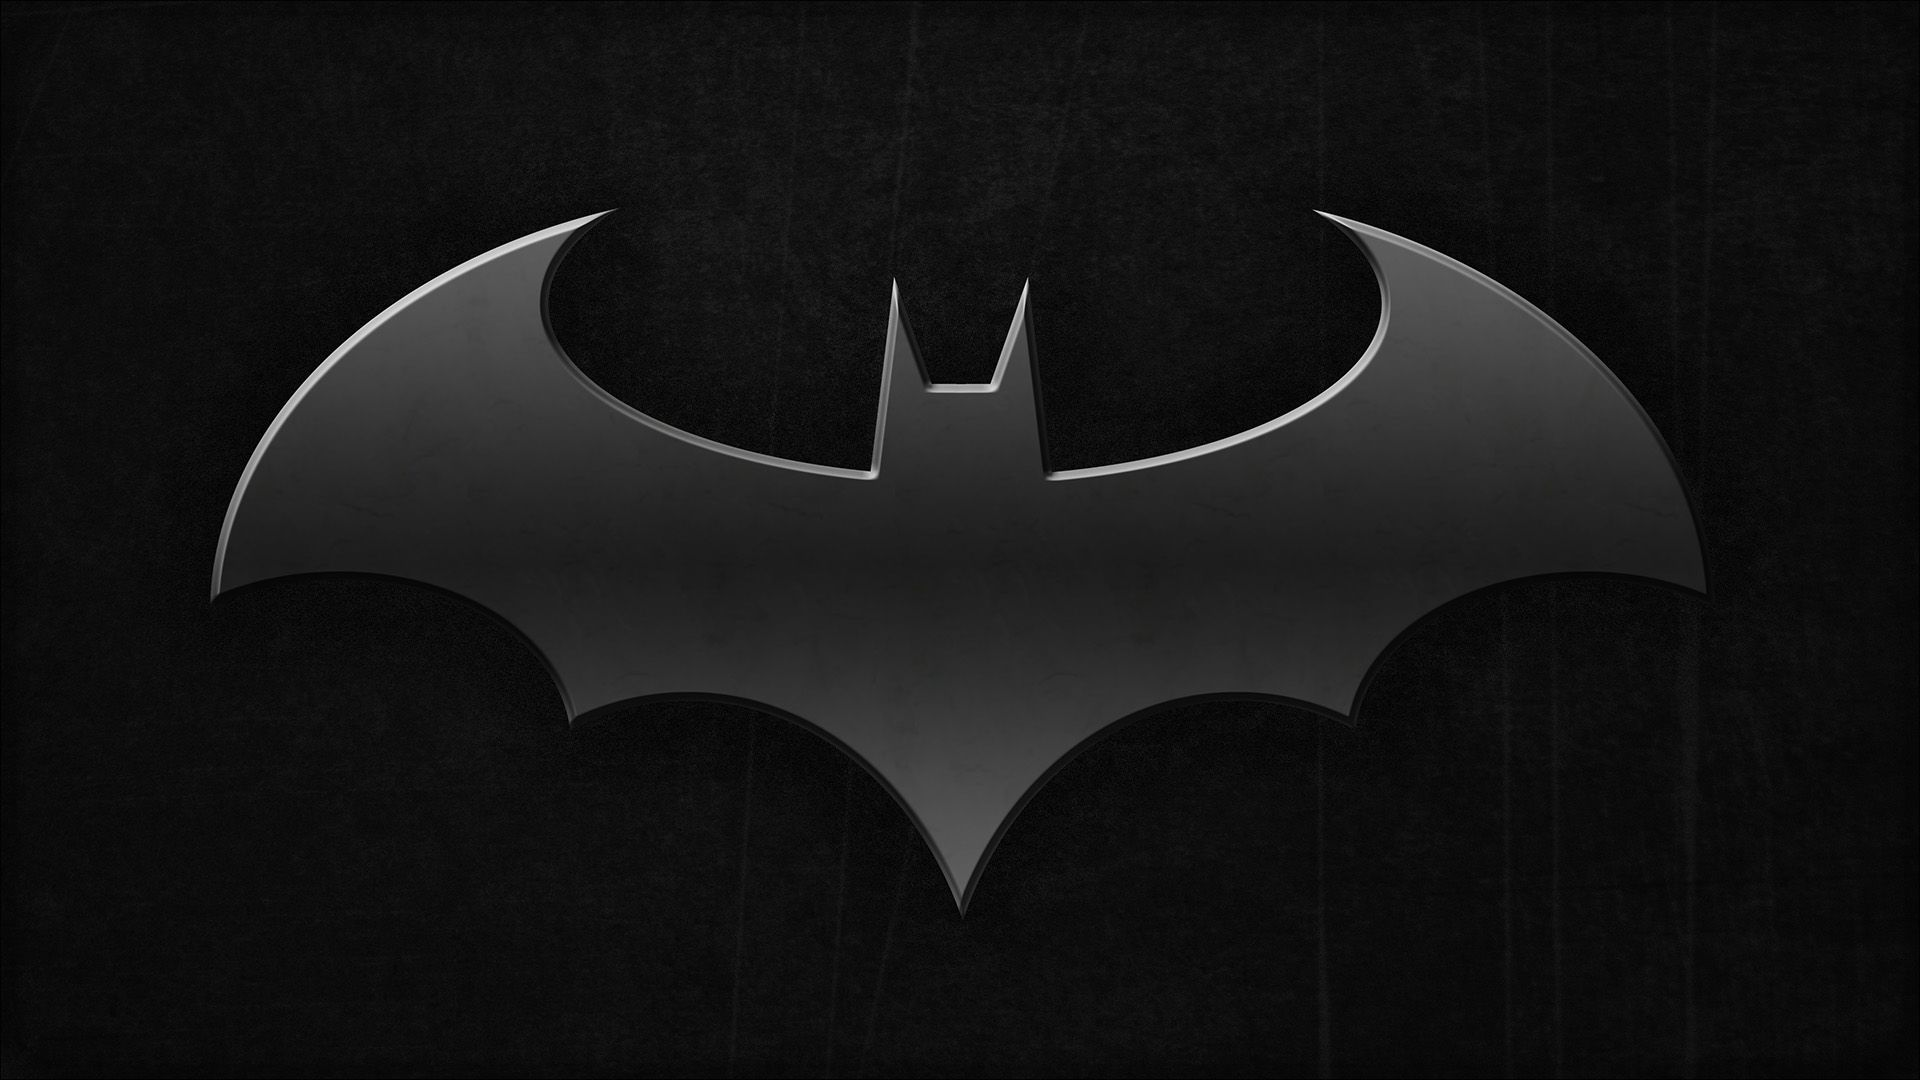 batman_logo_wallpaper_1_by_deathonabund59sff4.jpg (1920